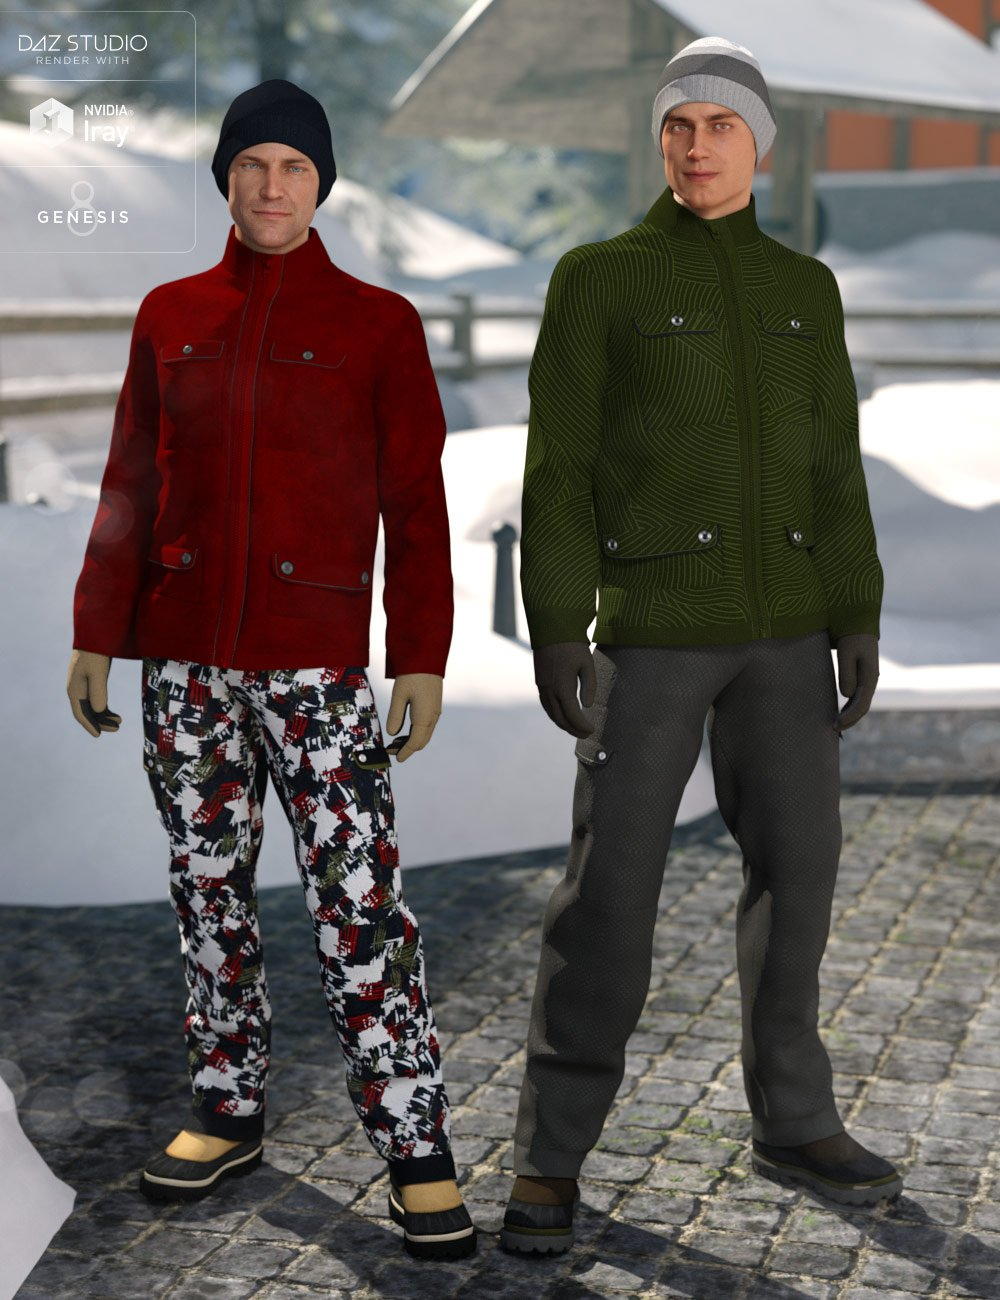 dForce Winter Snow Outfit Male Textures by: DirtyFairy, 3D Models by Daz 3D